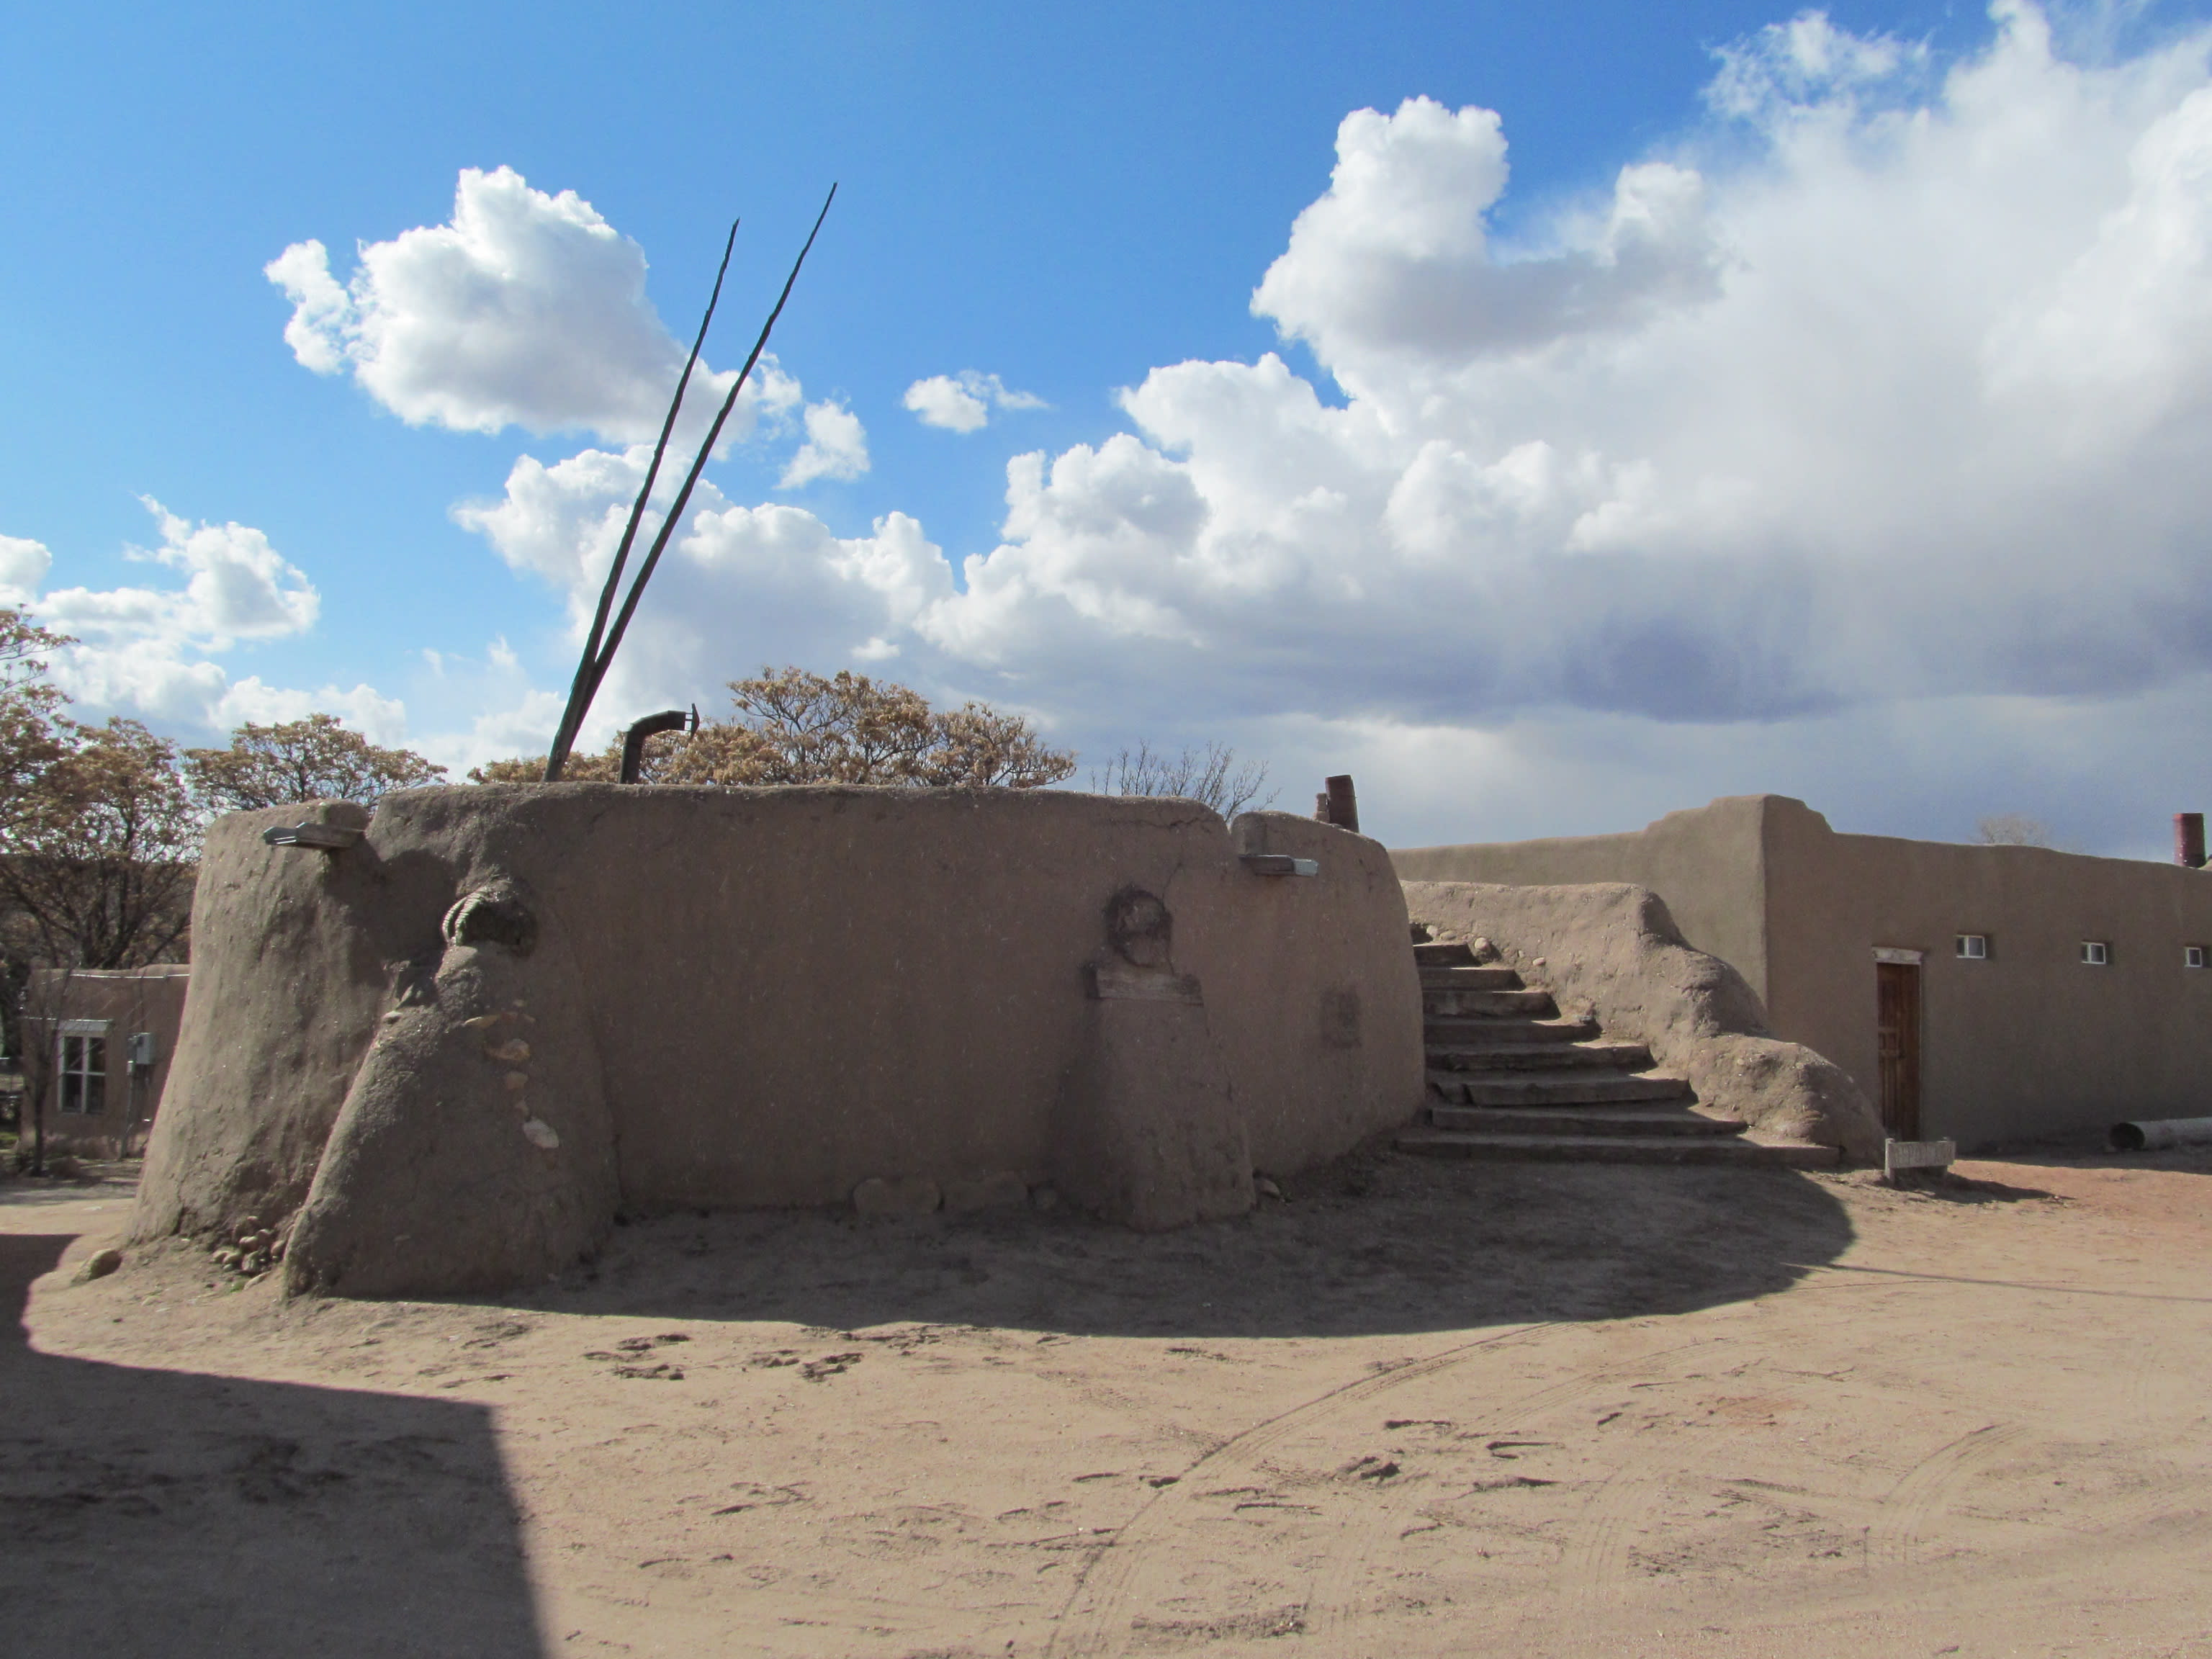 Kivas are a central feature of Pueblo communities, used for ceremonial and/or political gatherings.